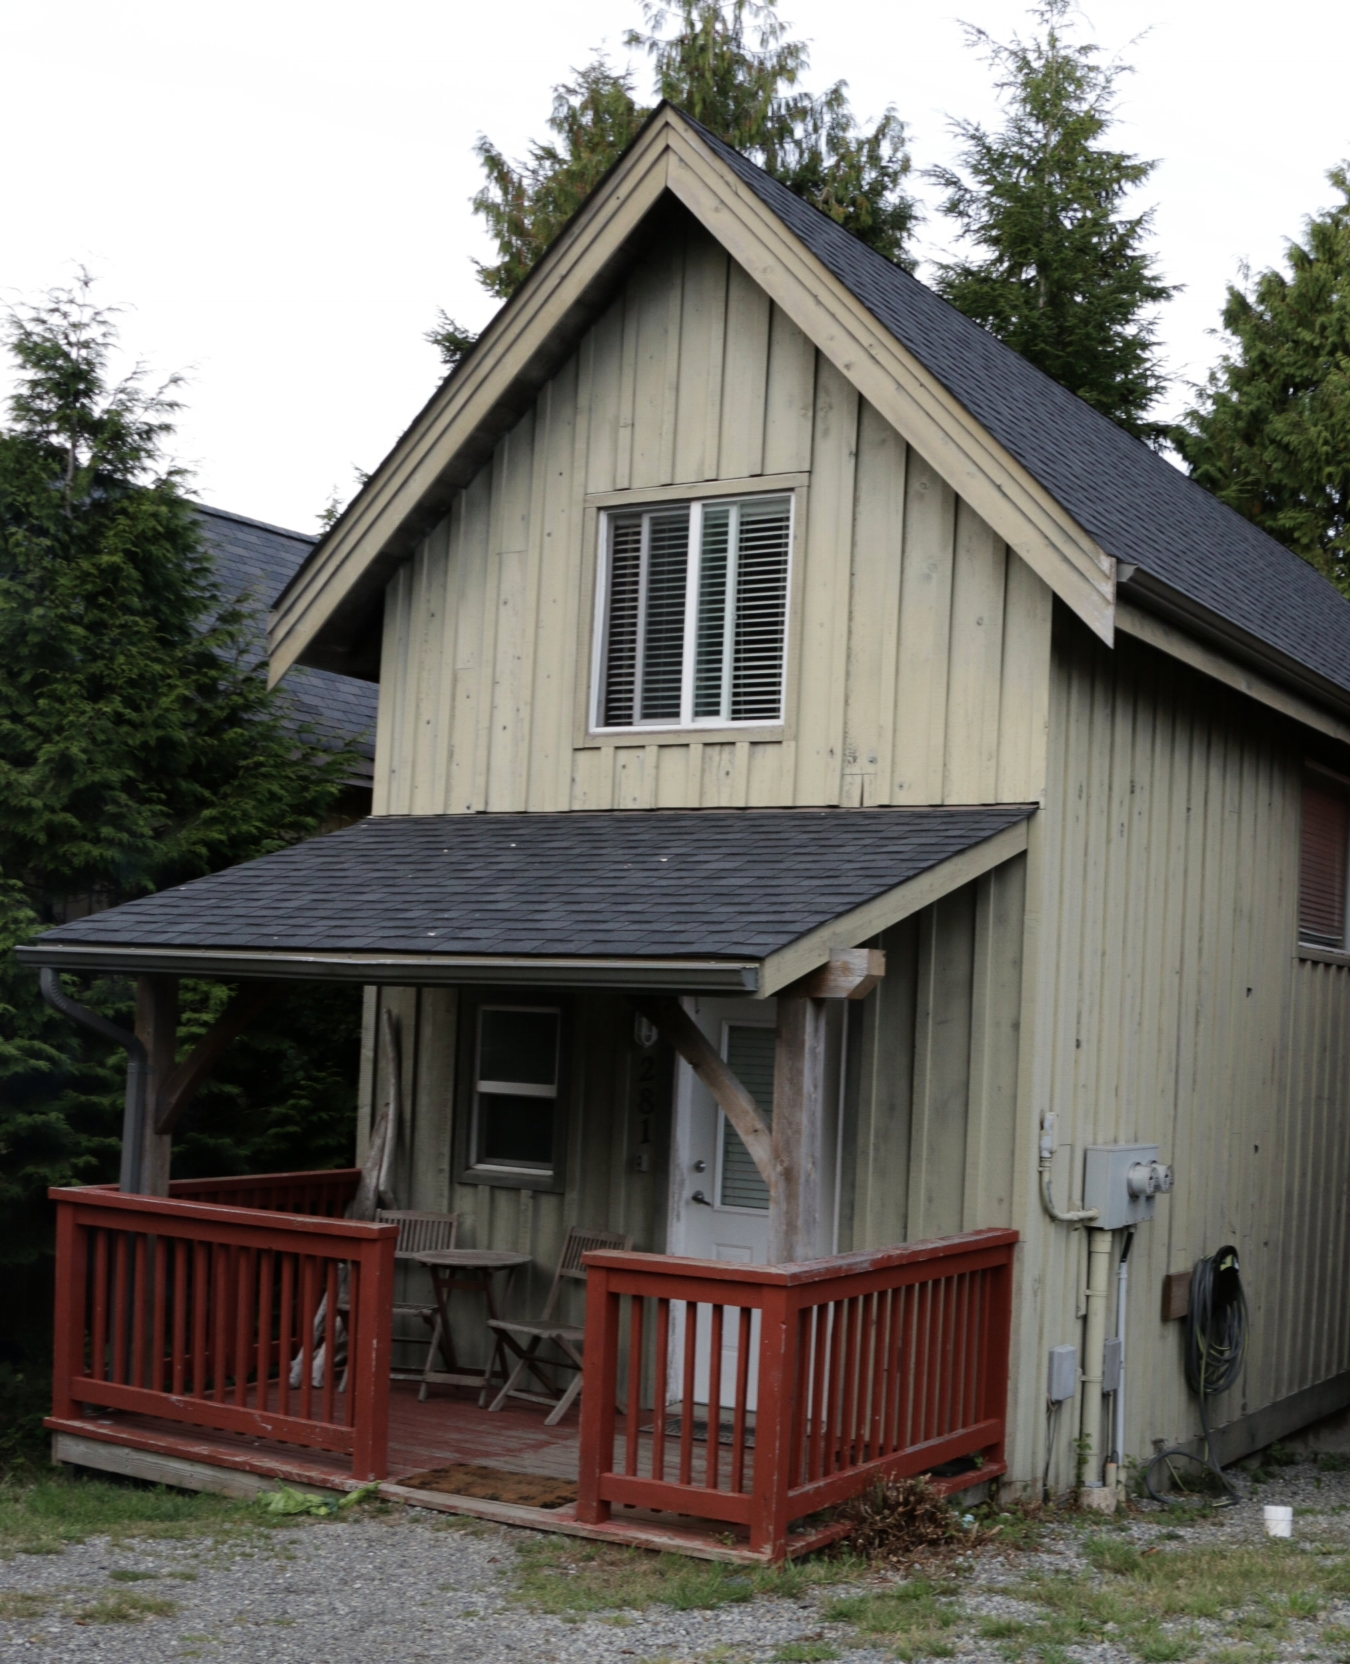 The cabin in Ucluelet BC.